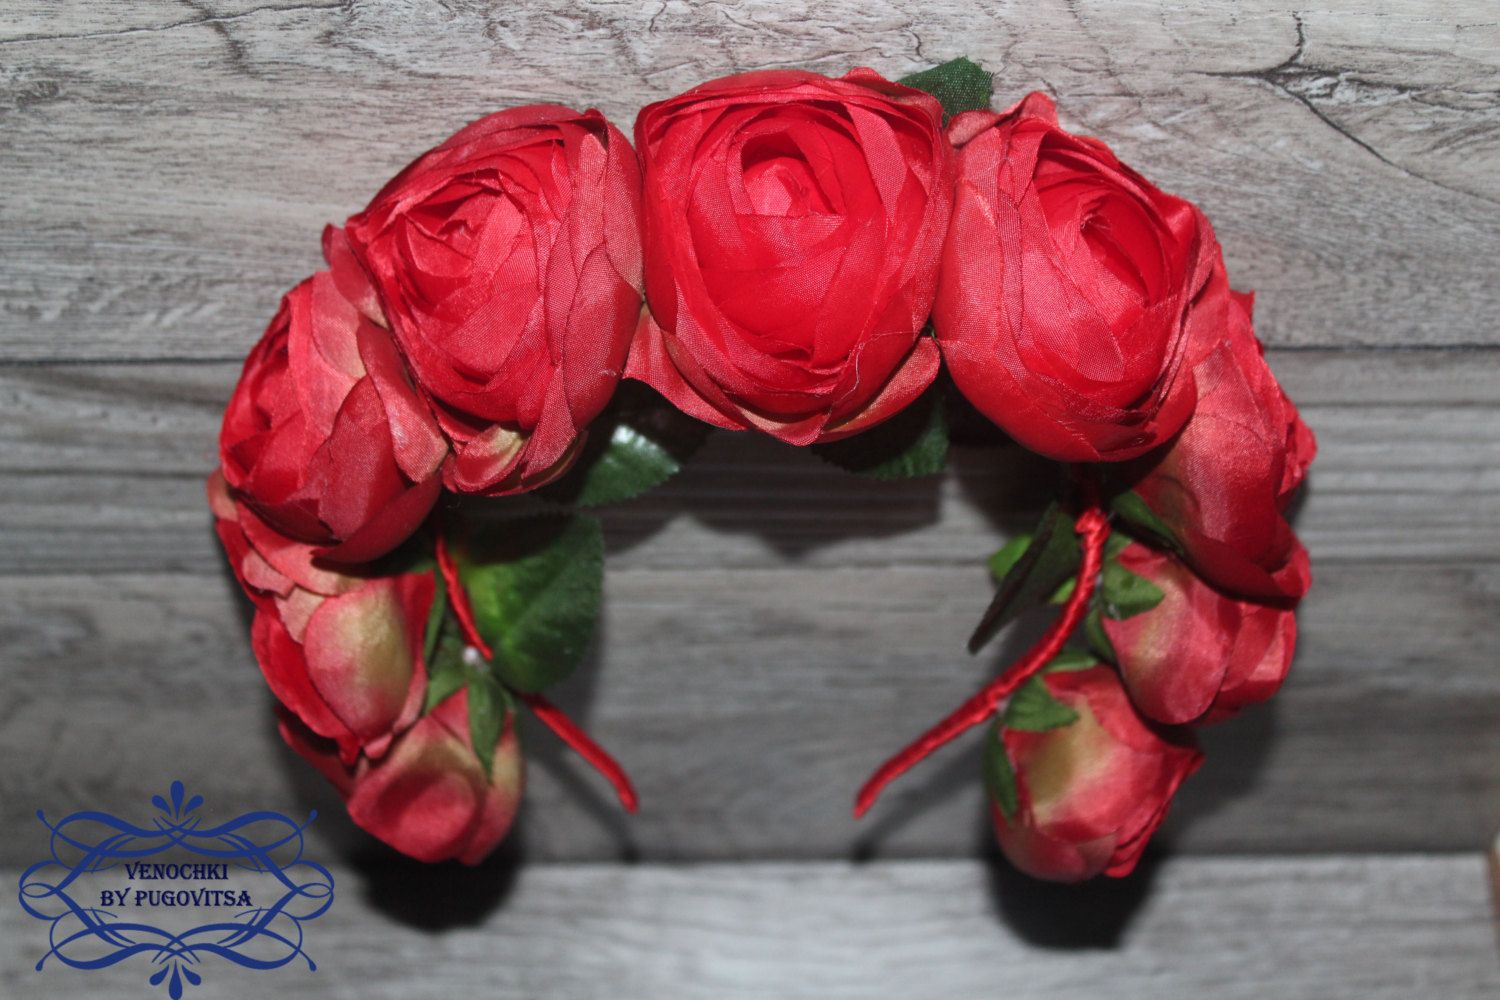 Red flower headpiece floral crown flower crown wedding flower red flower headpiece floral crown flower crown wedding flower headband red flower headband adult flower crown headband flower head wreath by forbridal on izmirmasajfo